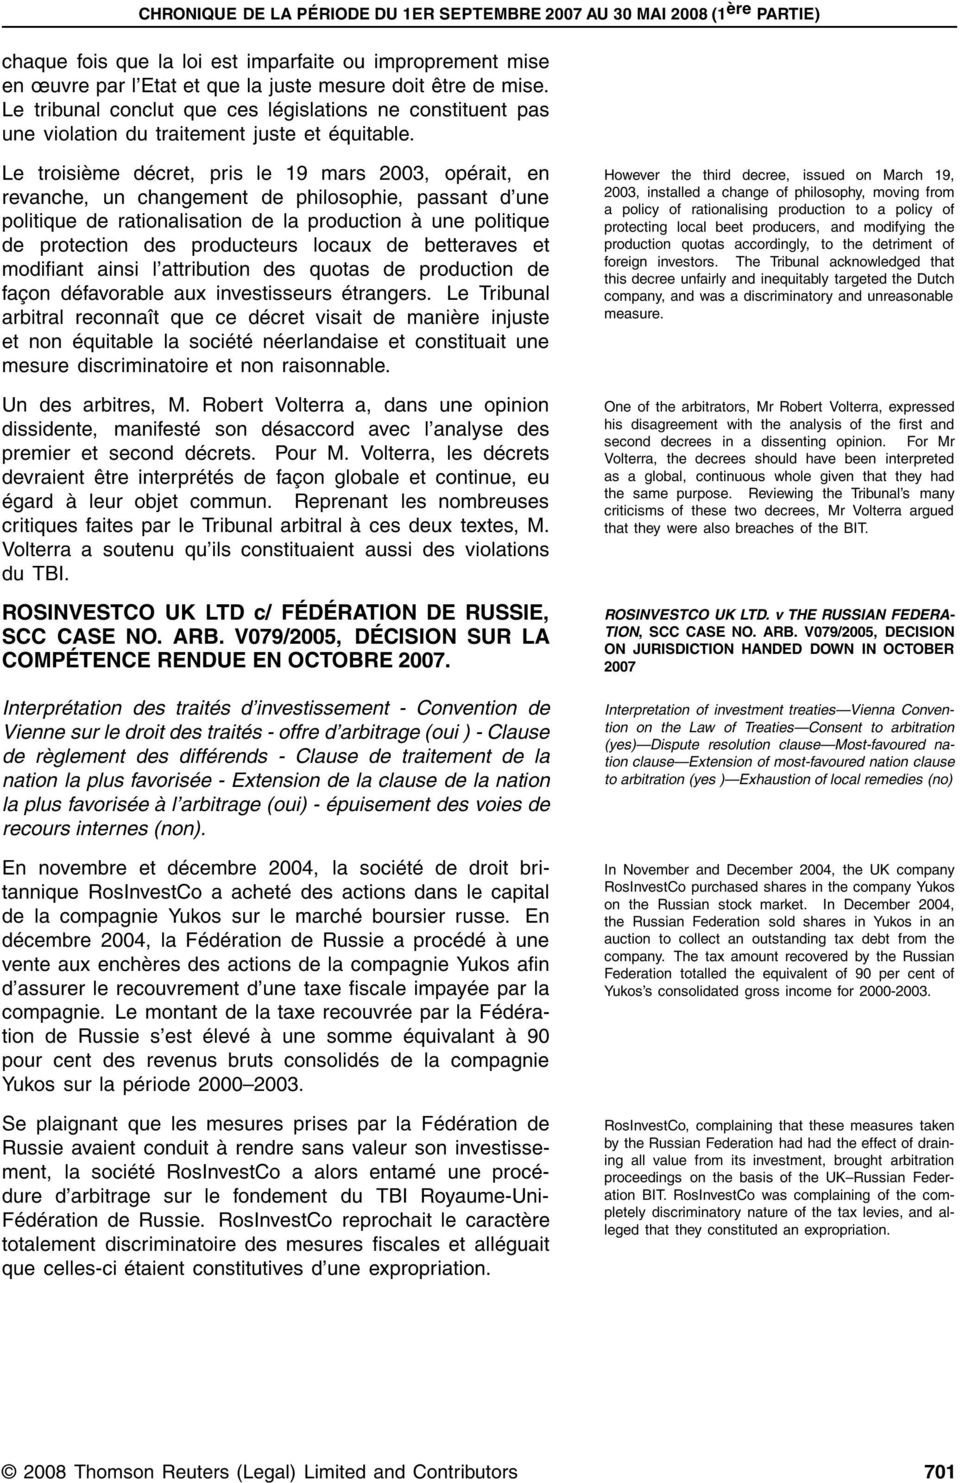 Le troisième décret, pris le 19 mars 2003, opérait, en However the third decree, issued on March 19, revanche, un changement de philosophie, passant d une politique de rationalisation de la